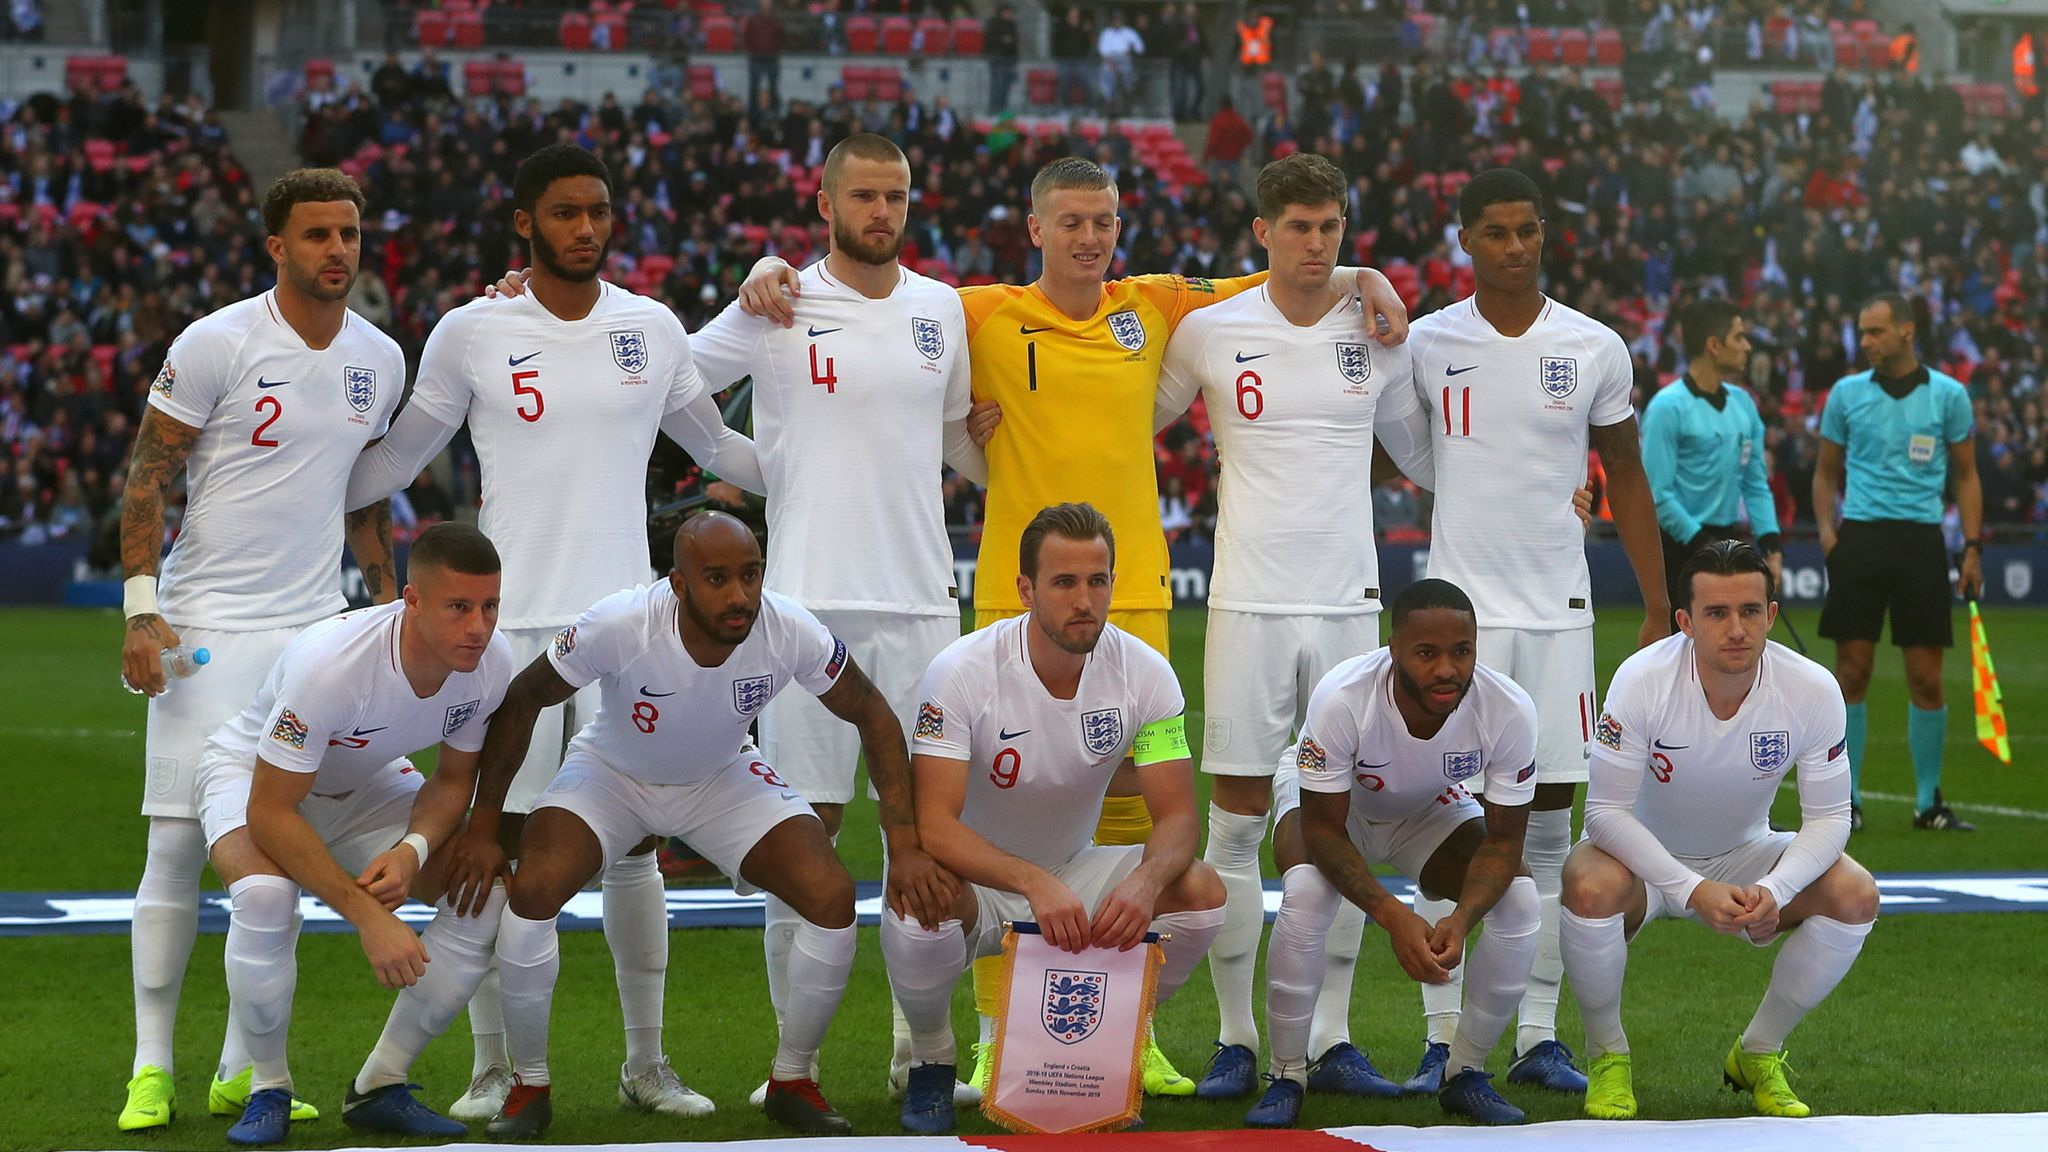 England S Euro 2020 Qualifier Dates Football News Sky Sports